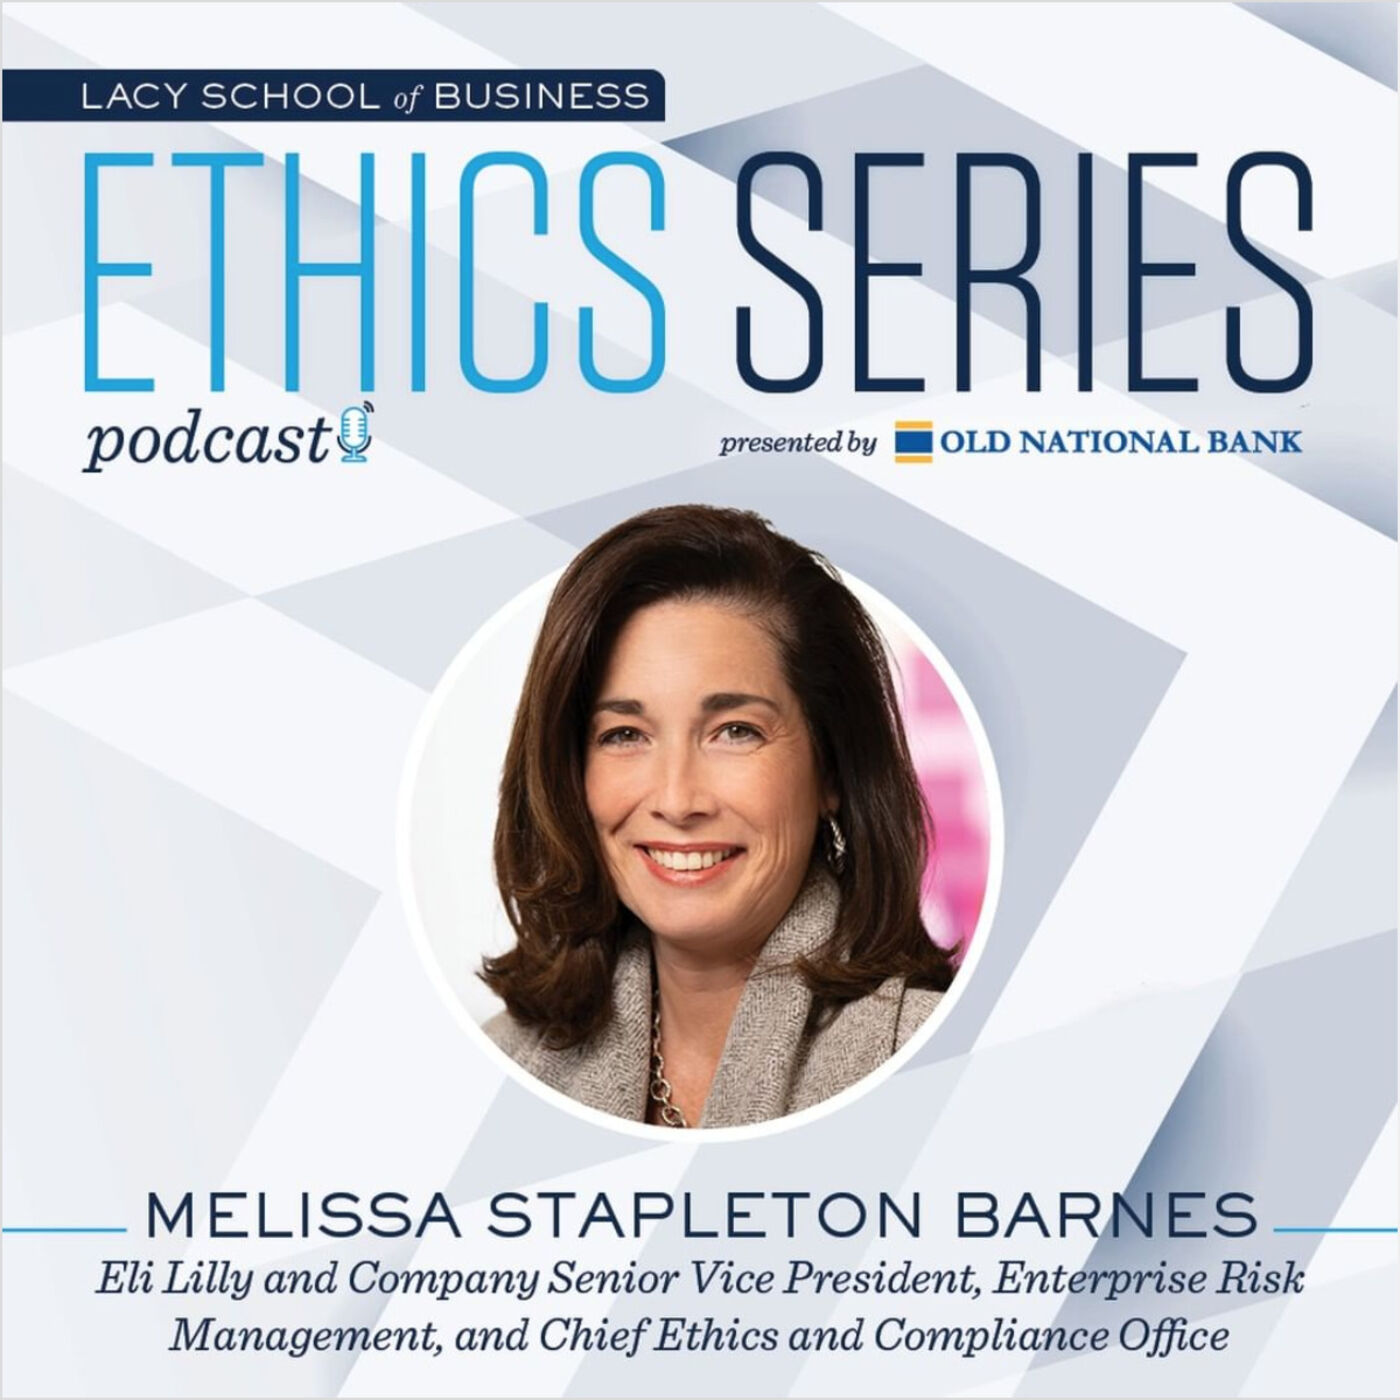 3. Ethical Leadership in Times of Crisis—COVID-19— Melissa Stapleton Barnes, Senior Vice President, Enterprise Risk Management, and Chief Ethics and Compliance Officer, Eli Lilly and Company.